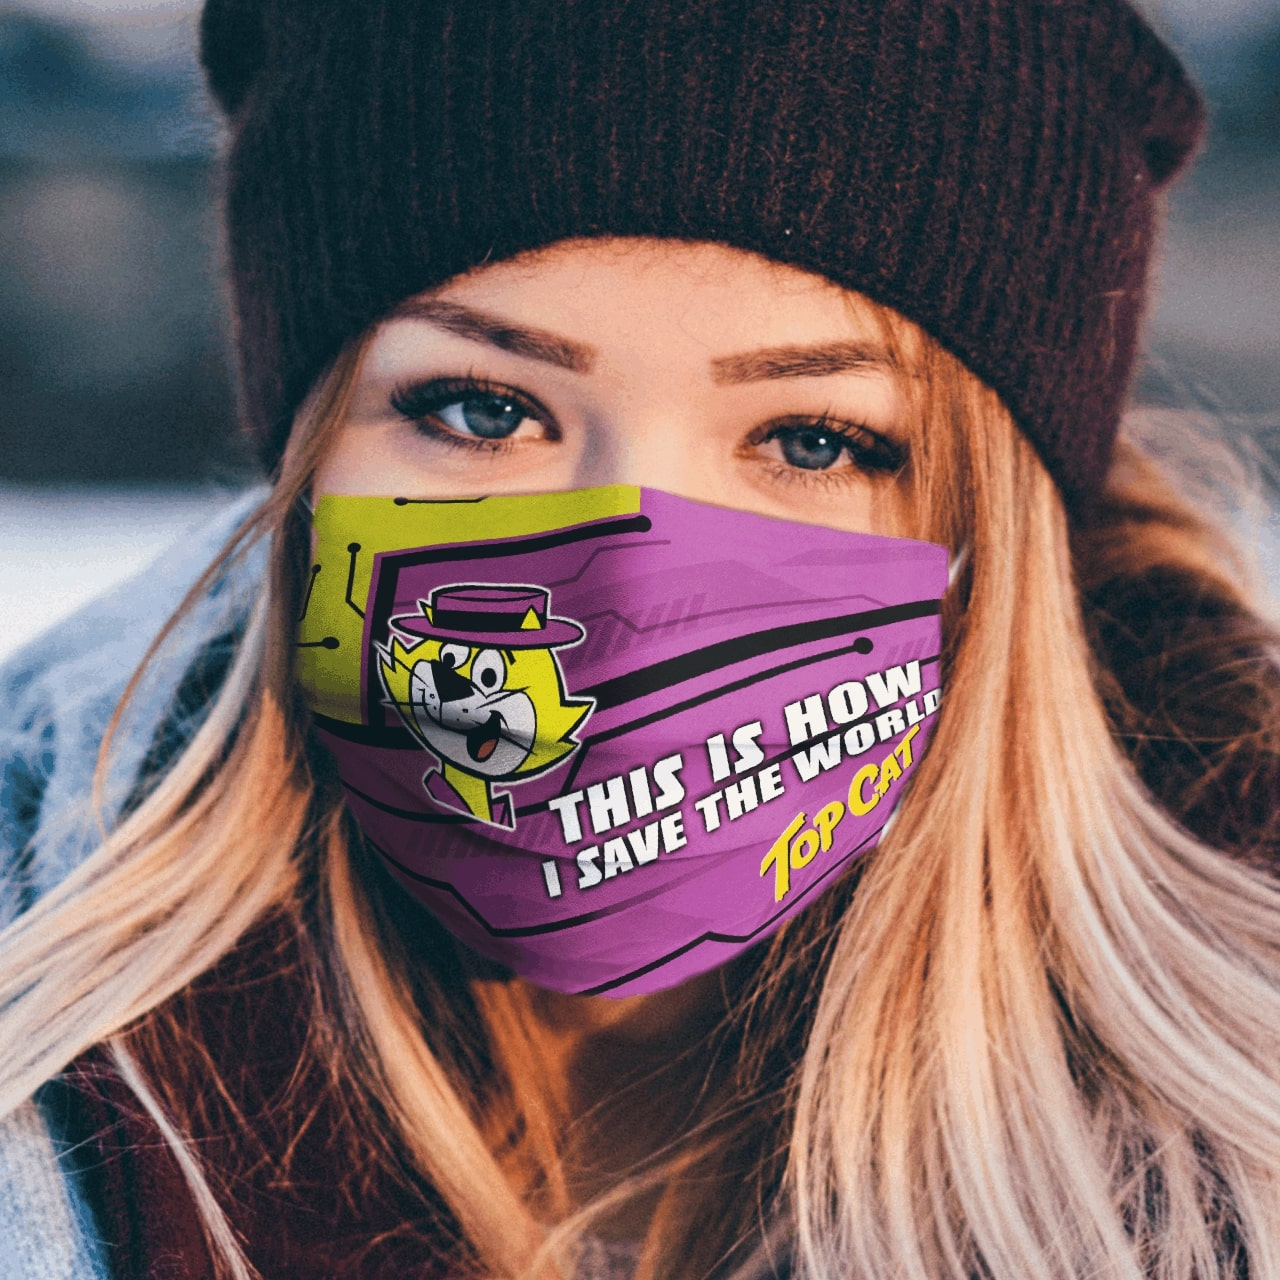 This is how i save the world top cat full printing face mask 1